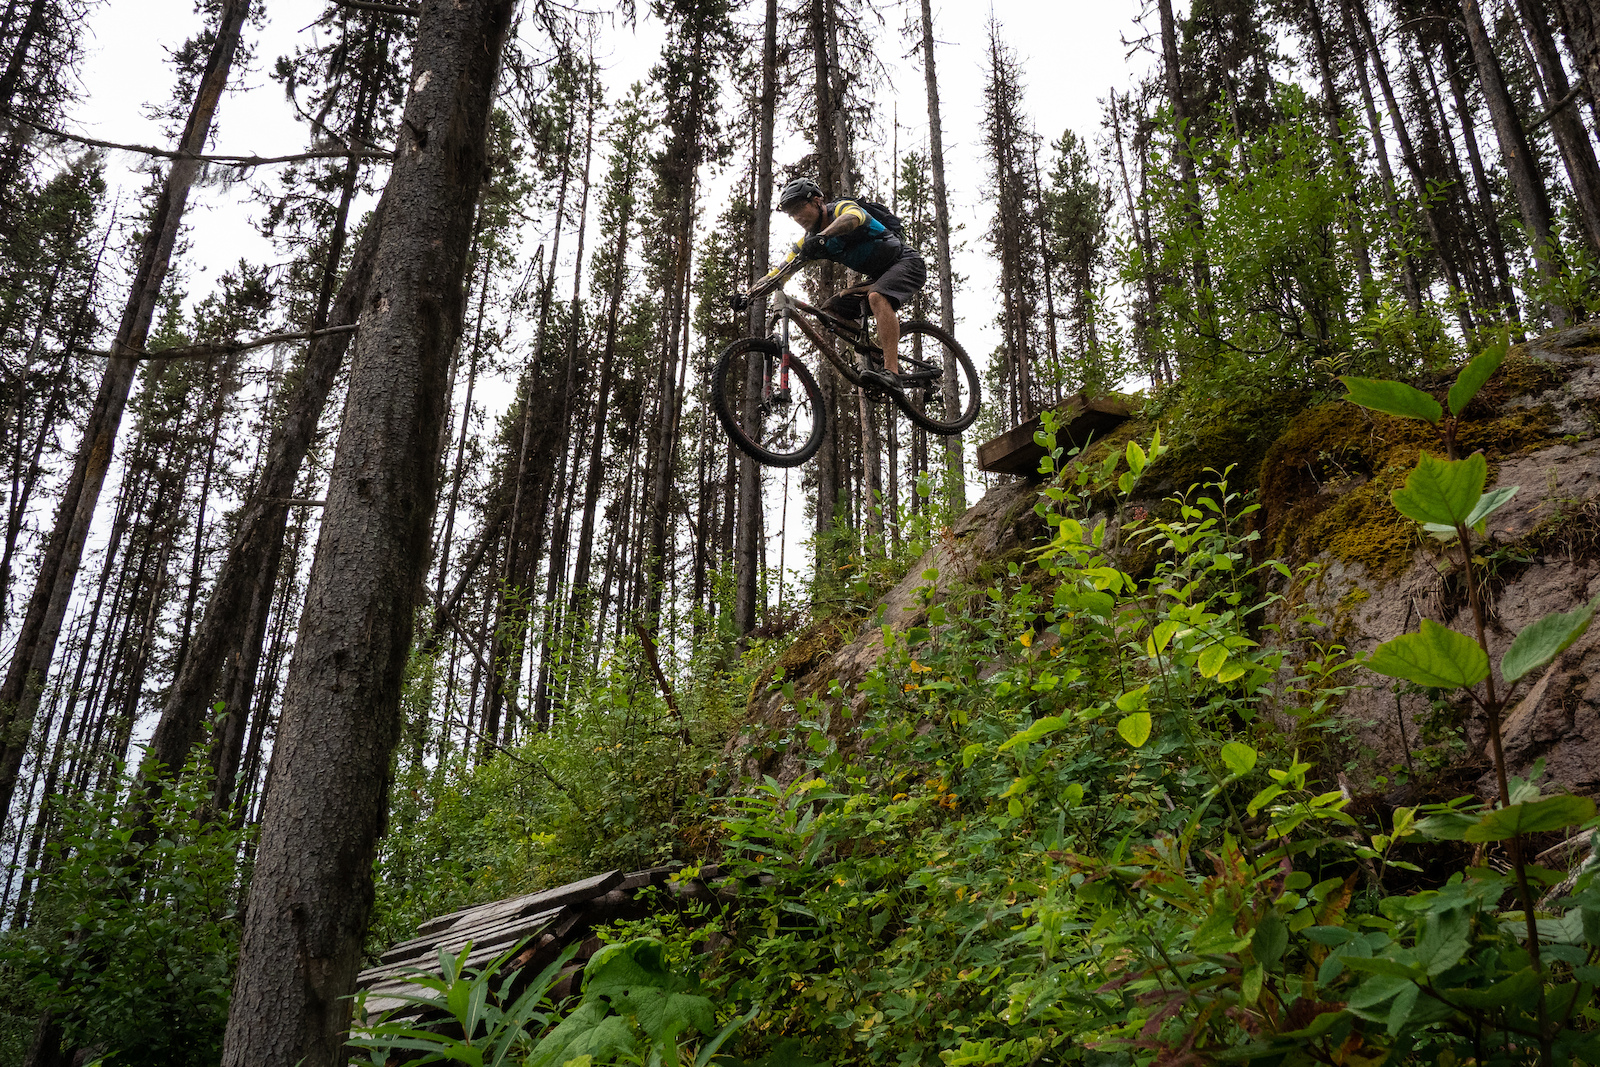 Dave sending the rock drop onto some slick wood on a soggy day in Smithers.